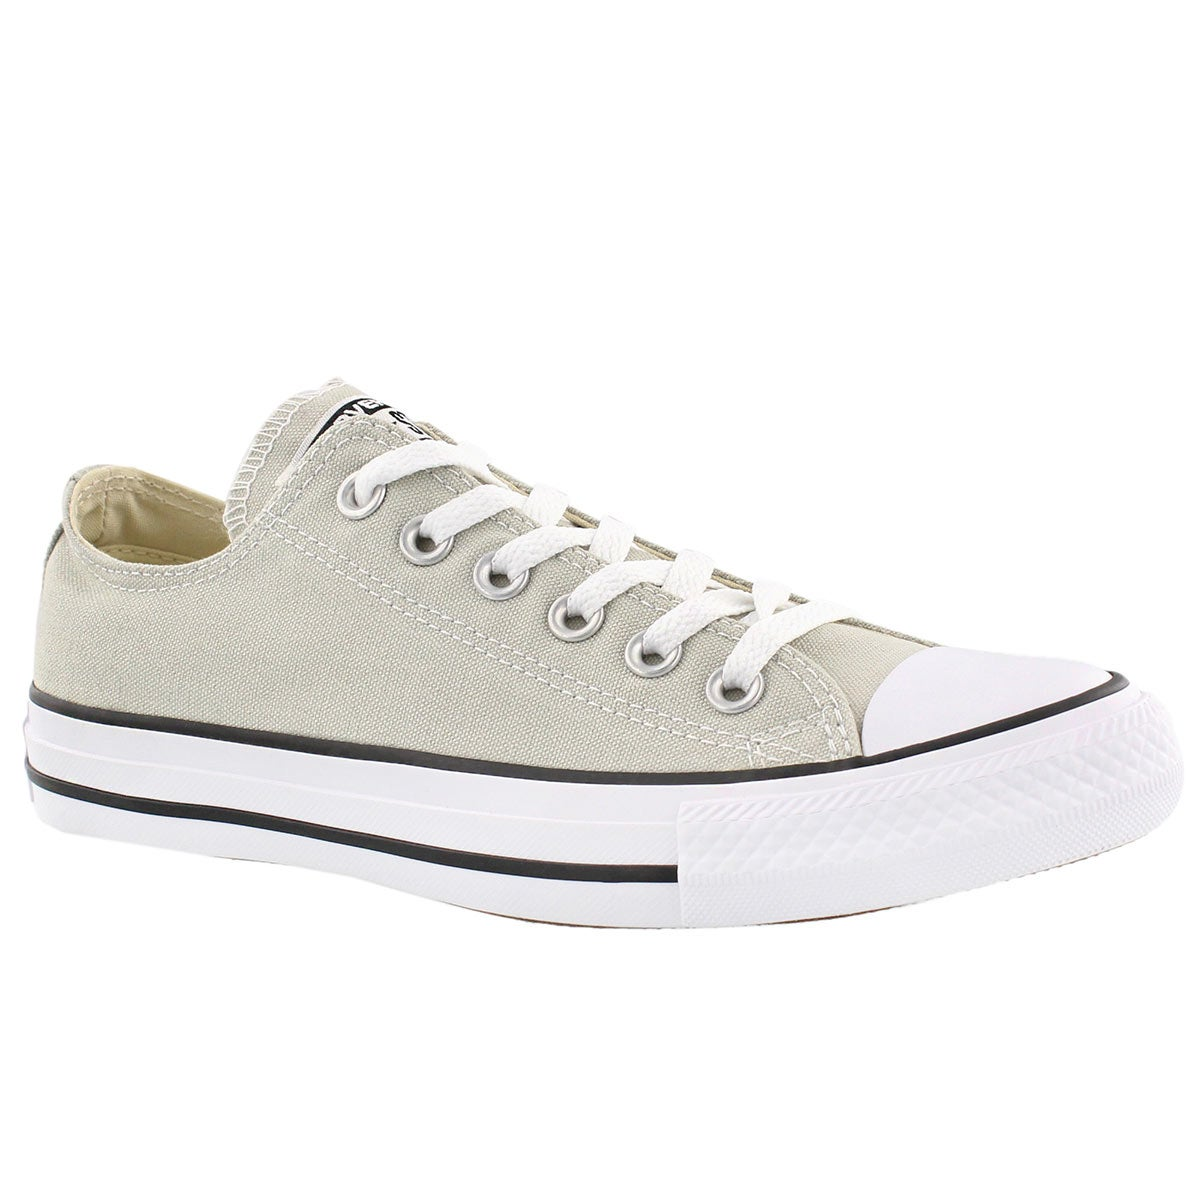 Women's CT ALLSTAR SEASONAL light surplus sneakers